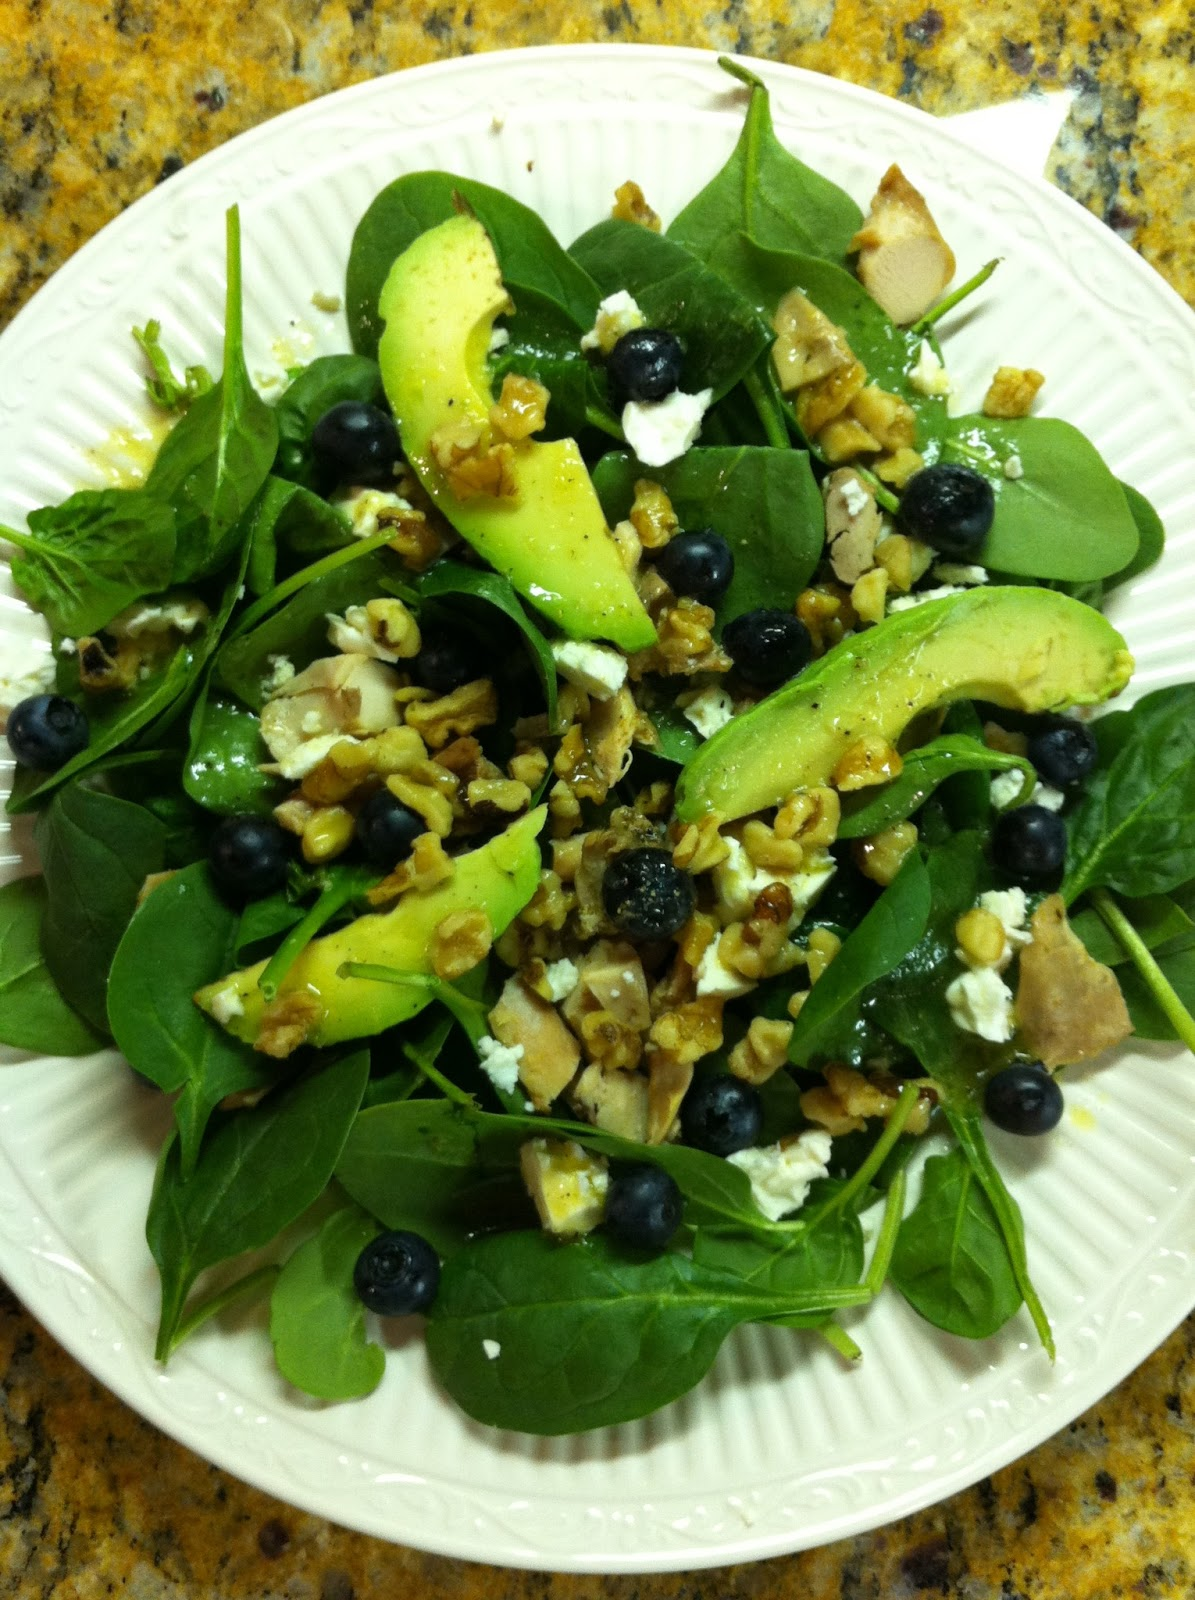 ... on a REAL Budget: Avocado & Spinach Salad with Warm Citrus Vinaigrette